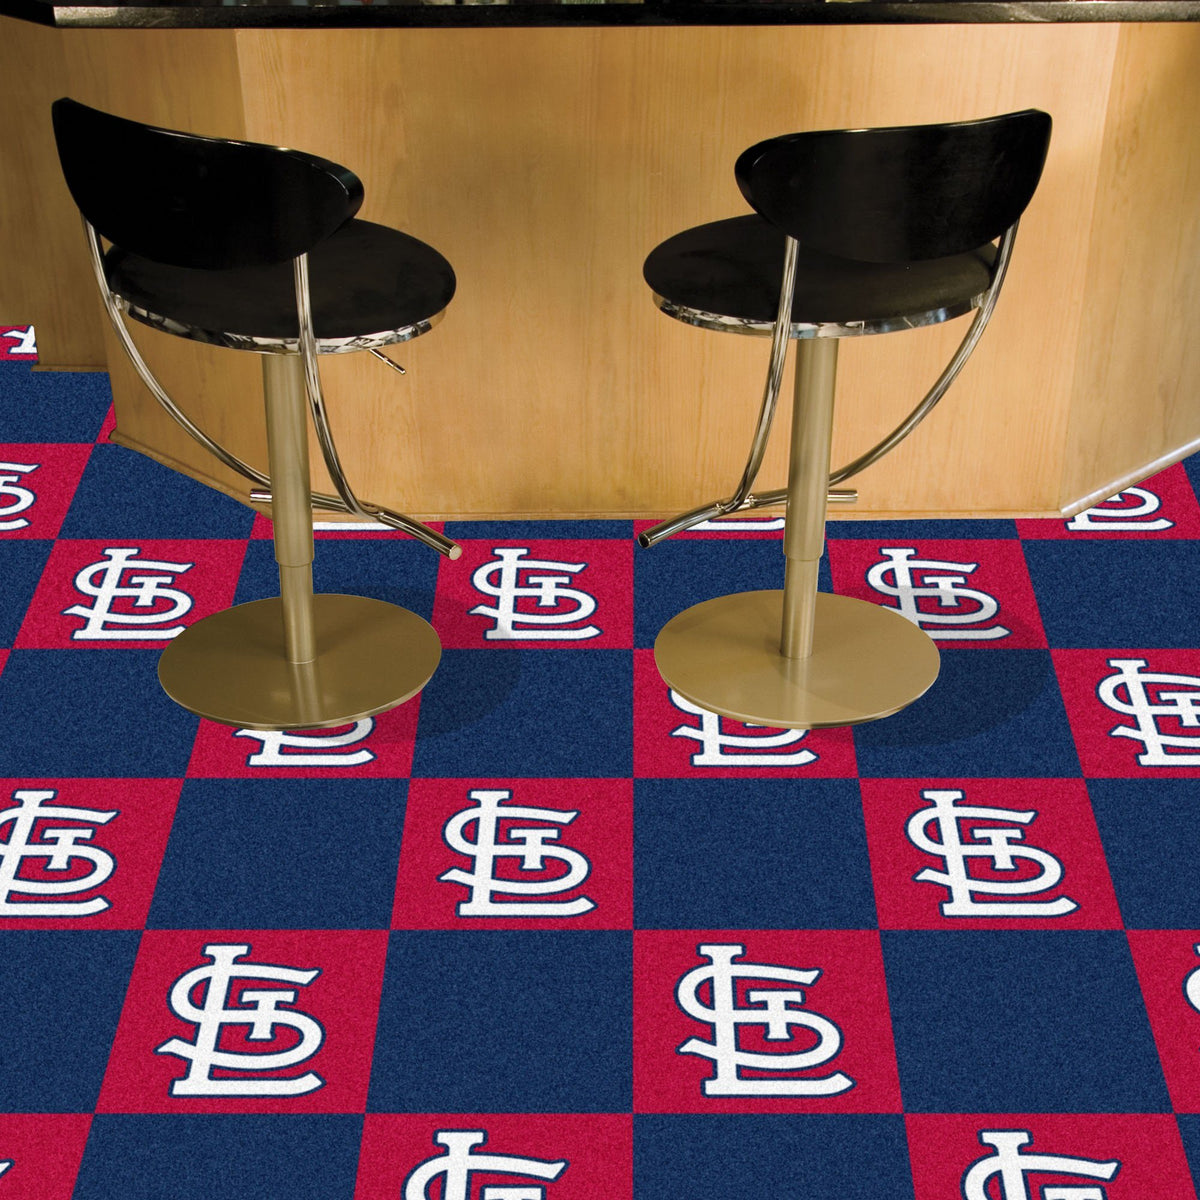 MLB - Team Carpet Tiles MLB Mats, Carpet Tile Flooring, Team Carpet Tiles, MLB, Home Fan Mats St. Louis Cardinals